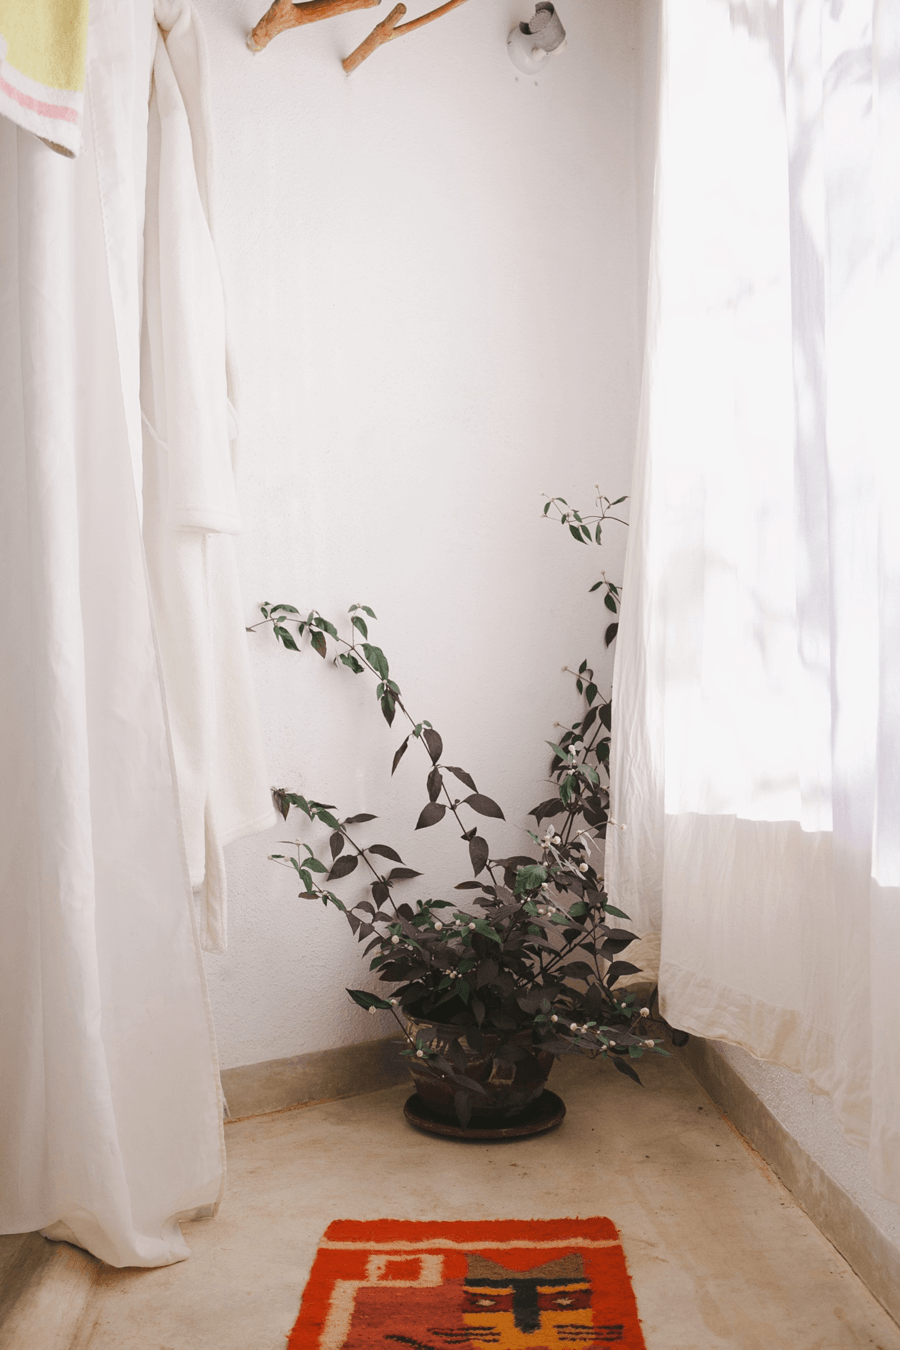 A Plant and Curtains